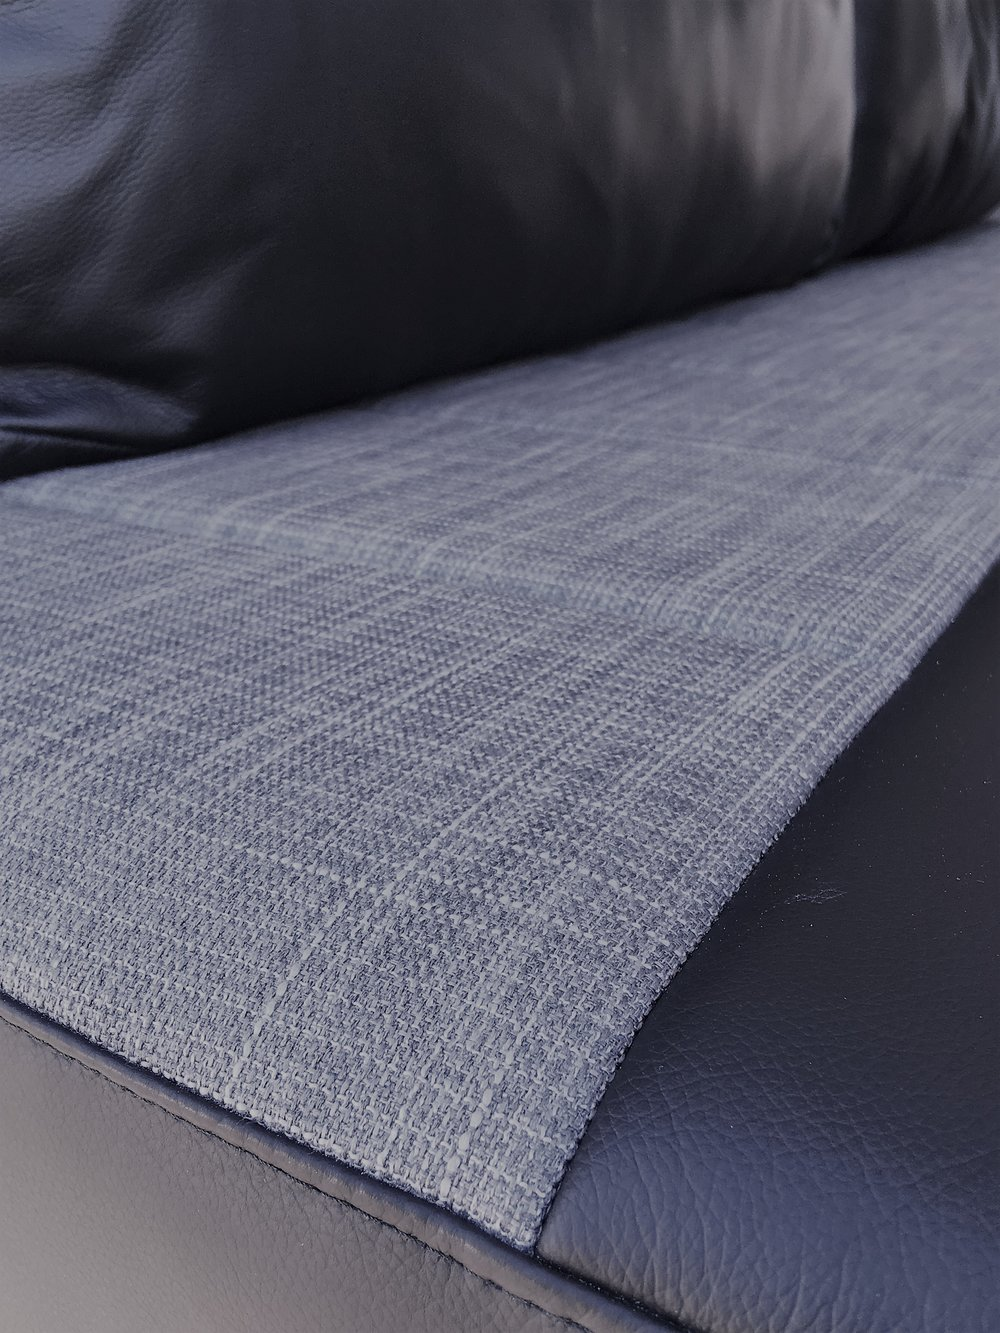 Fabric and leather upholstery